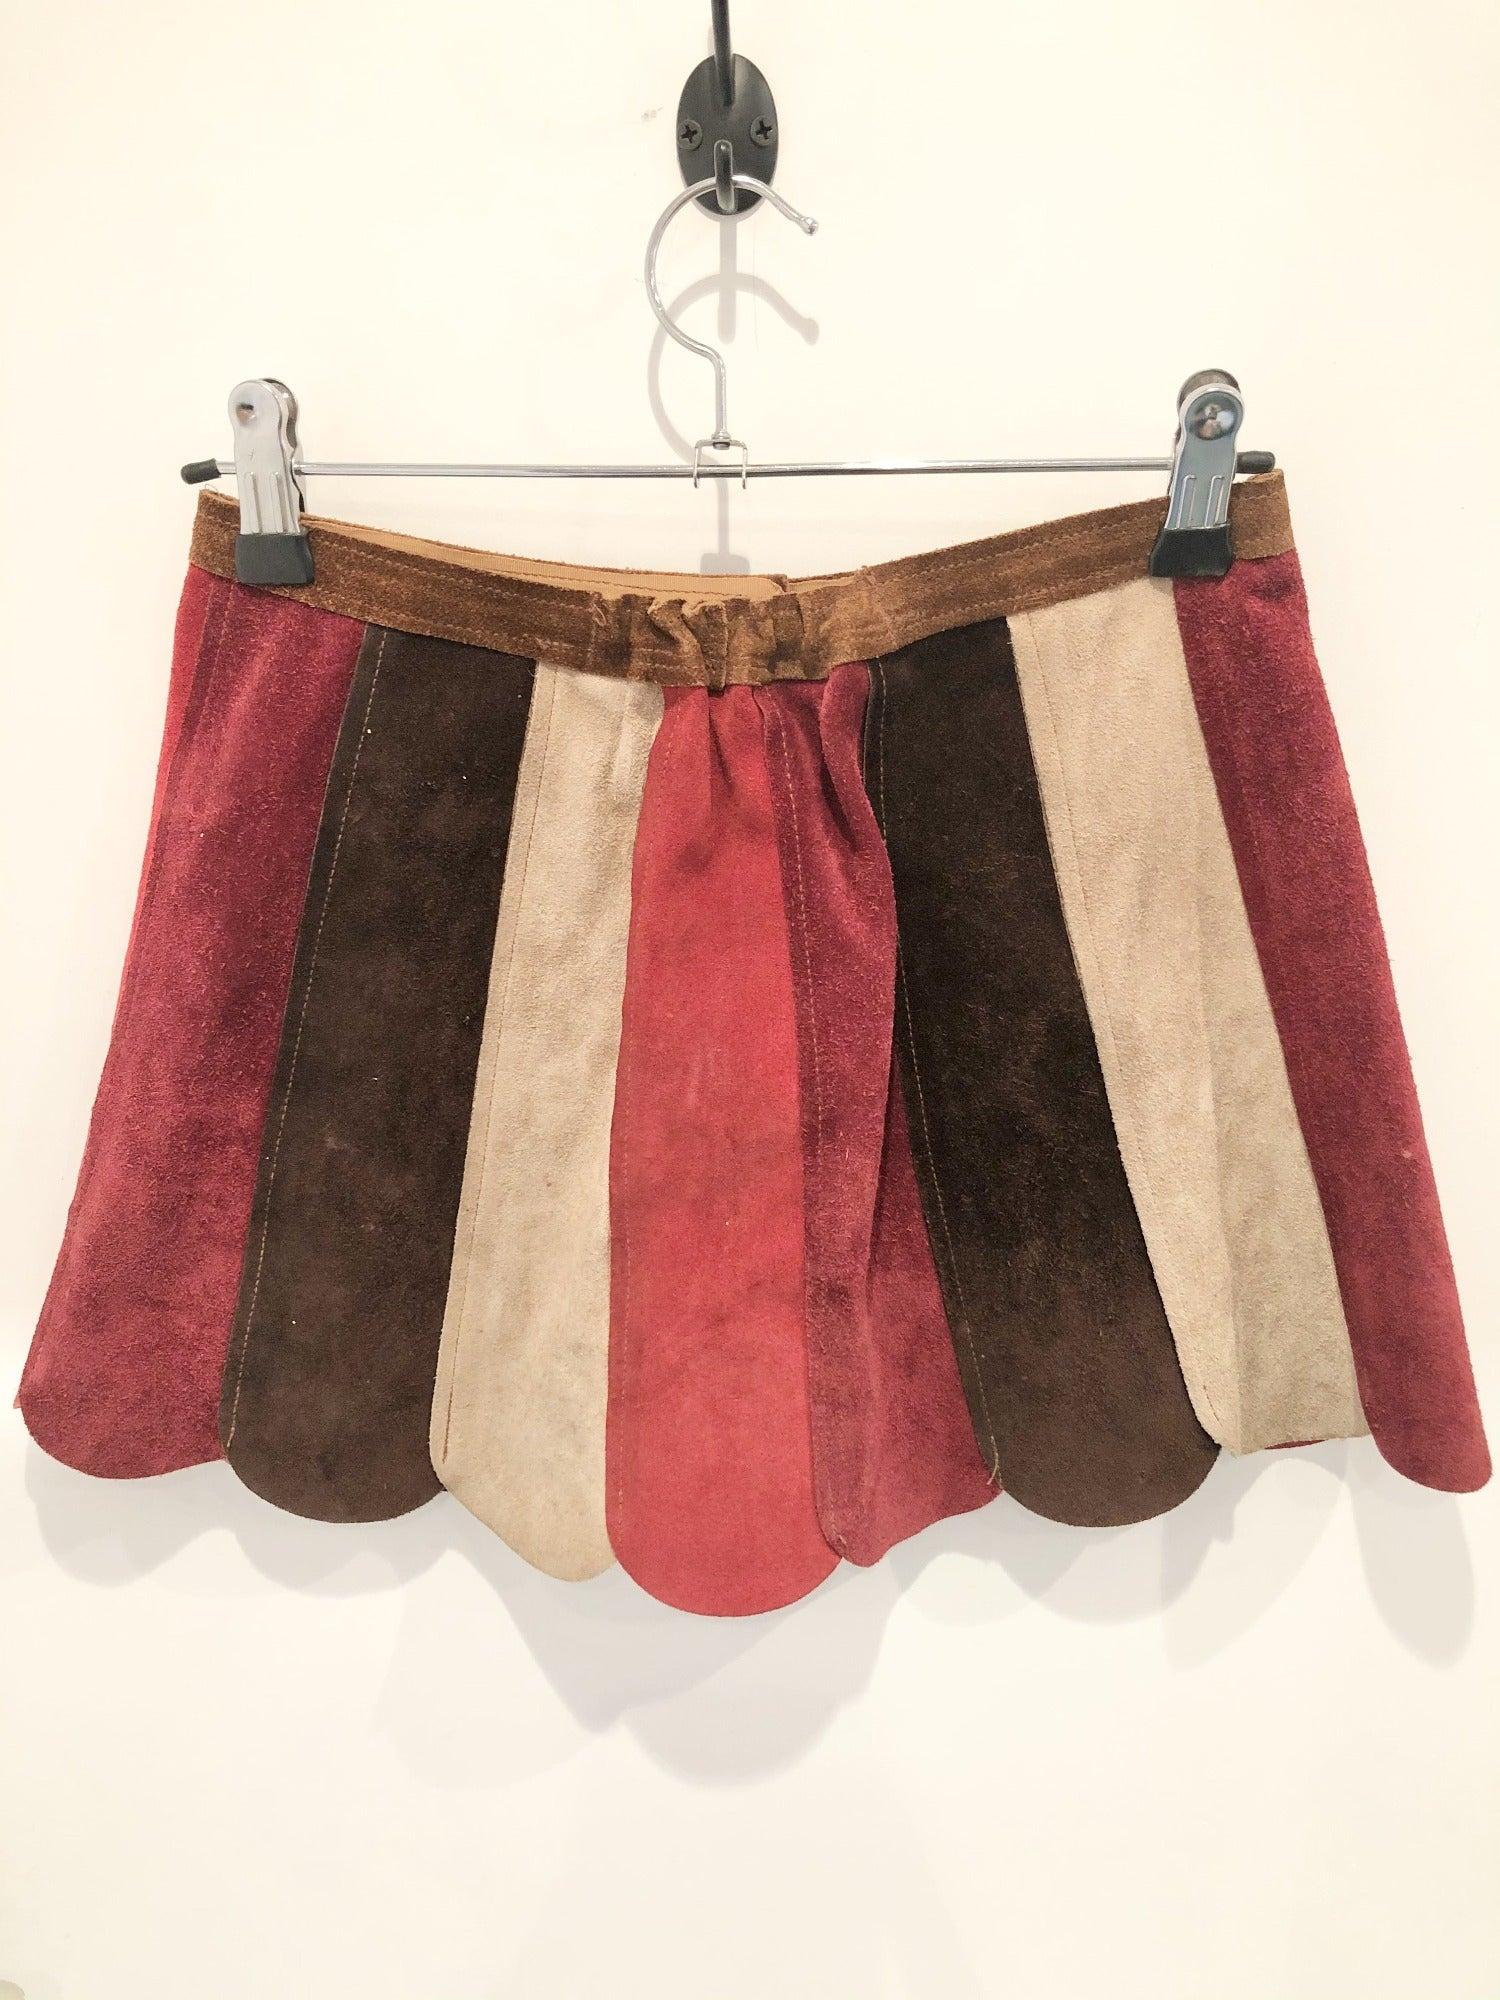 Vintage 1960's Suede Mini Skirt - Size 4/6 XS